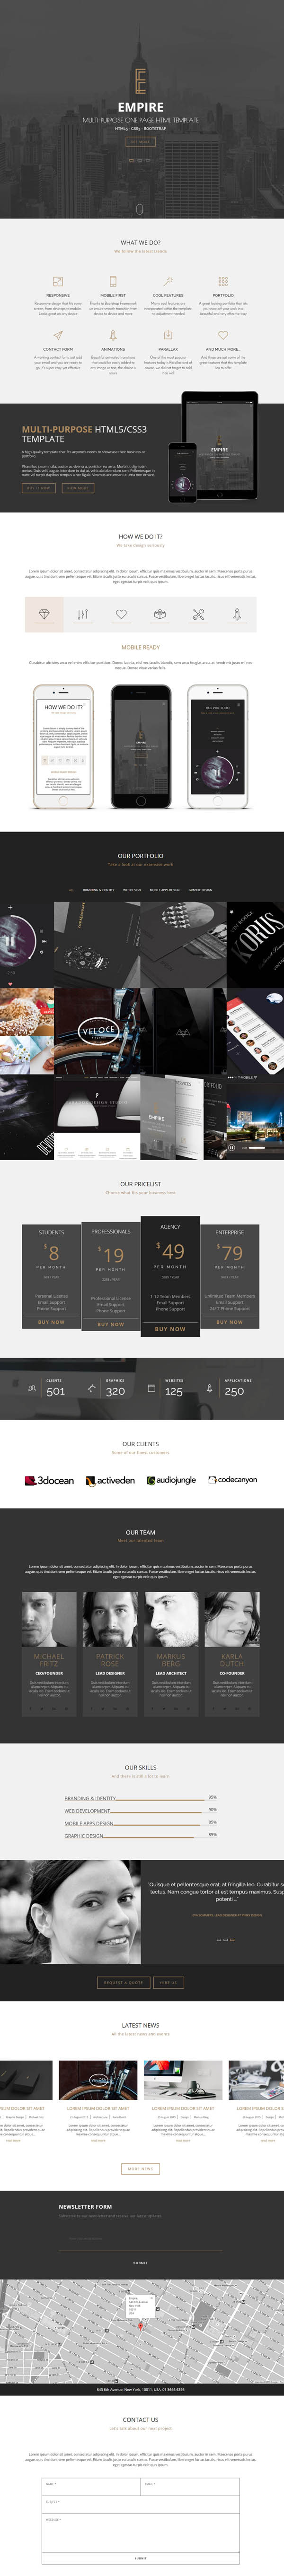 Empire - Multipurpose One Page Responsive Template